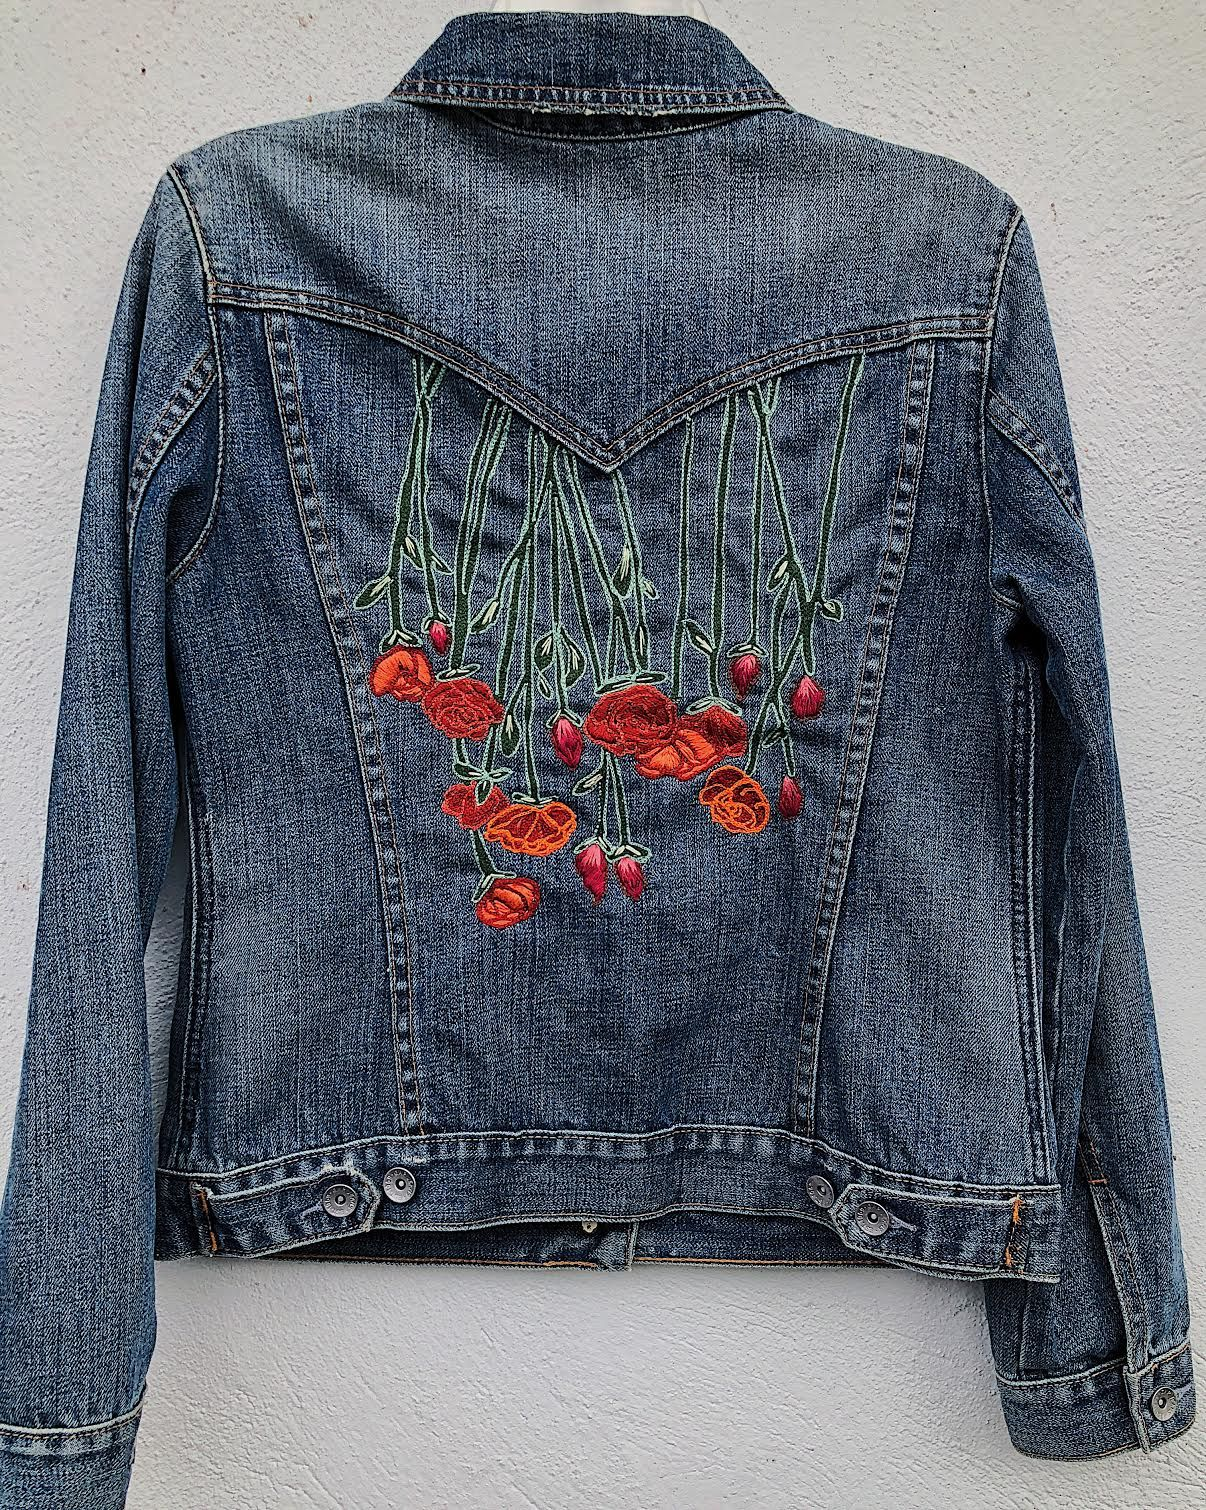 fd7bc2fb1881 Hand Embroidered Levi s Denim Jacket - Gypstitch Embroidery  embroidery   embroidereddenim